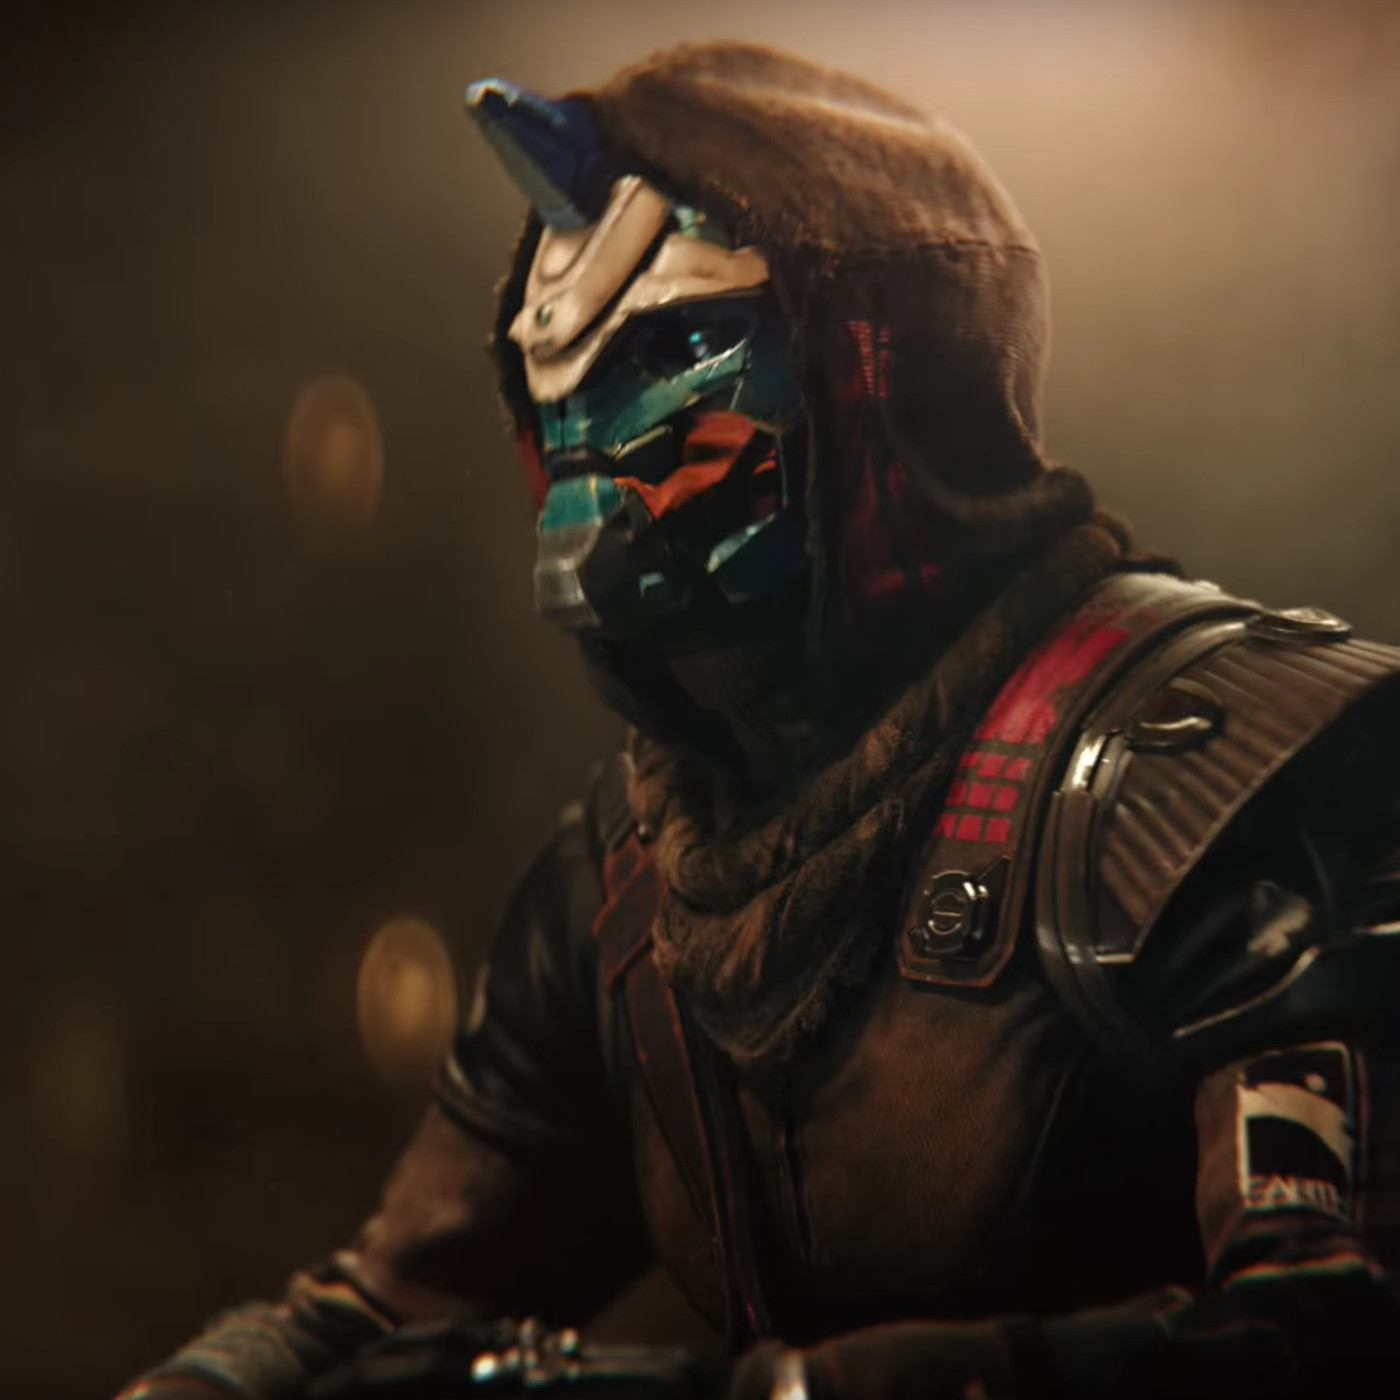 Destiny 2 S Teaser Trailer Brings Something New To The Franchise